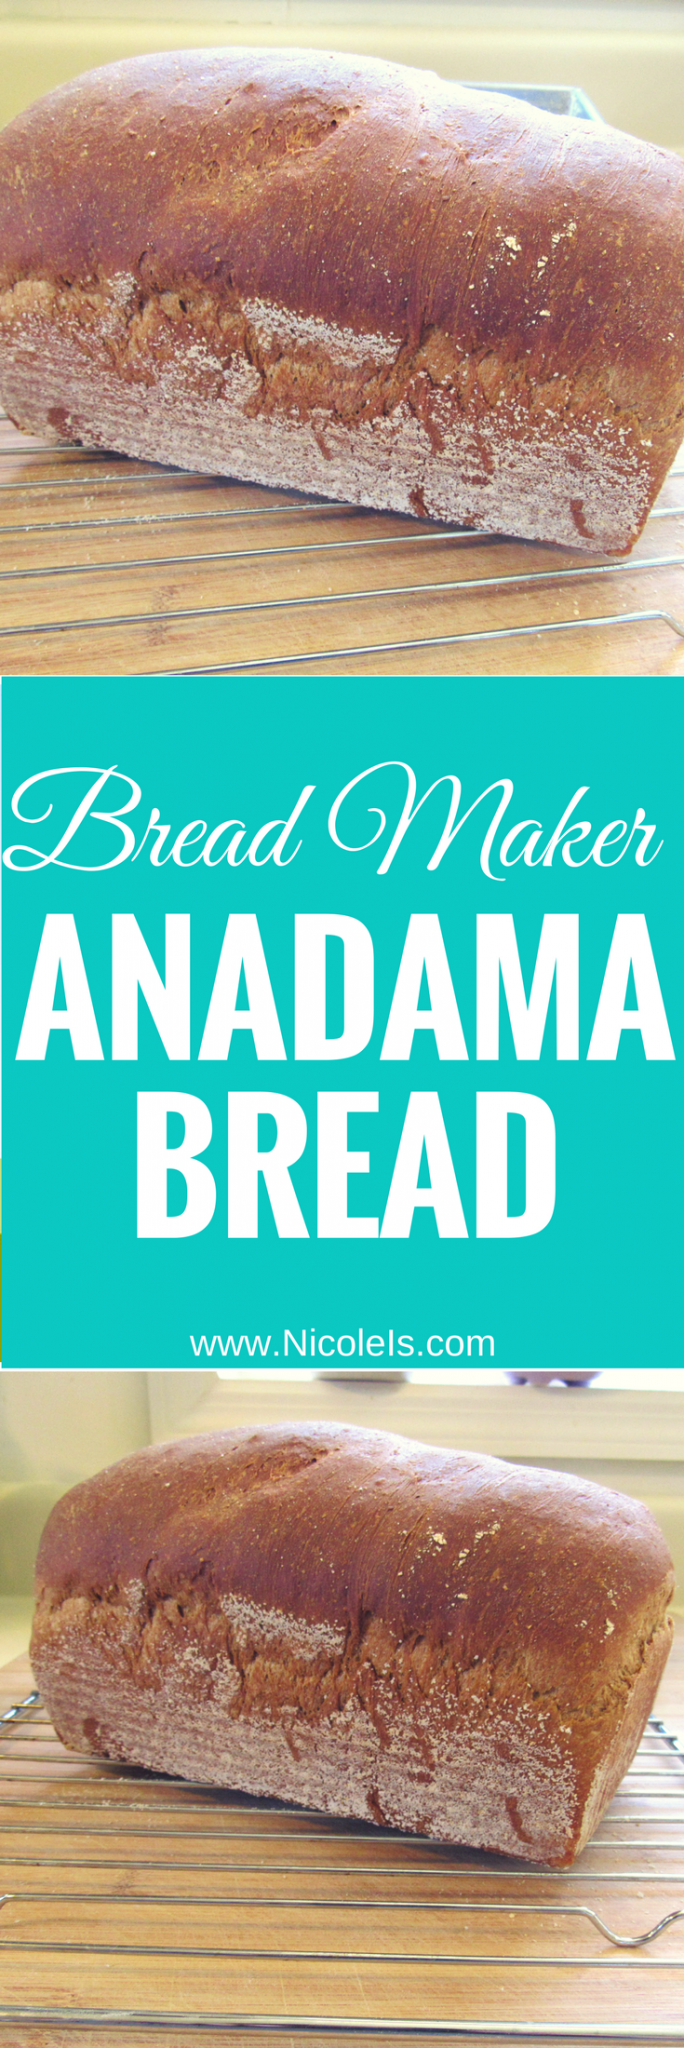 Bread Maker Anadama Bread - super easy and delicious! www.NicoleIs.com | Bread Machine Recipes | Bread Maker Recipes | Bread Recipes | Baking Bread | Sandwich Bread | Sandwich Rolls | Lunch Recipes | Homemade Bread | Baking | No Knead Bread |